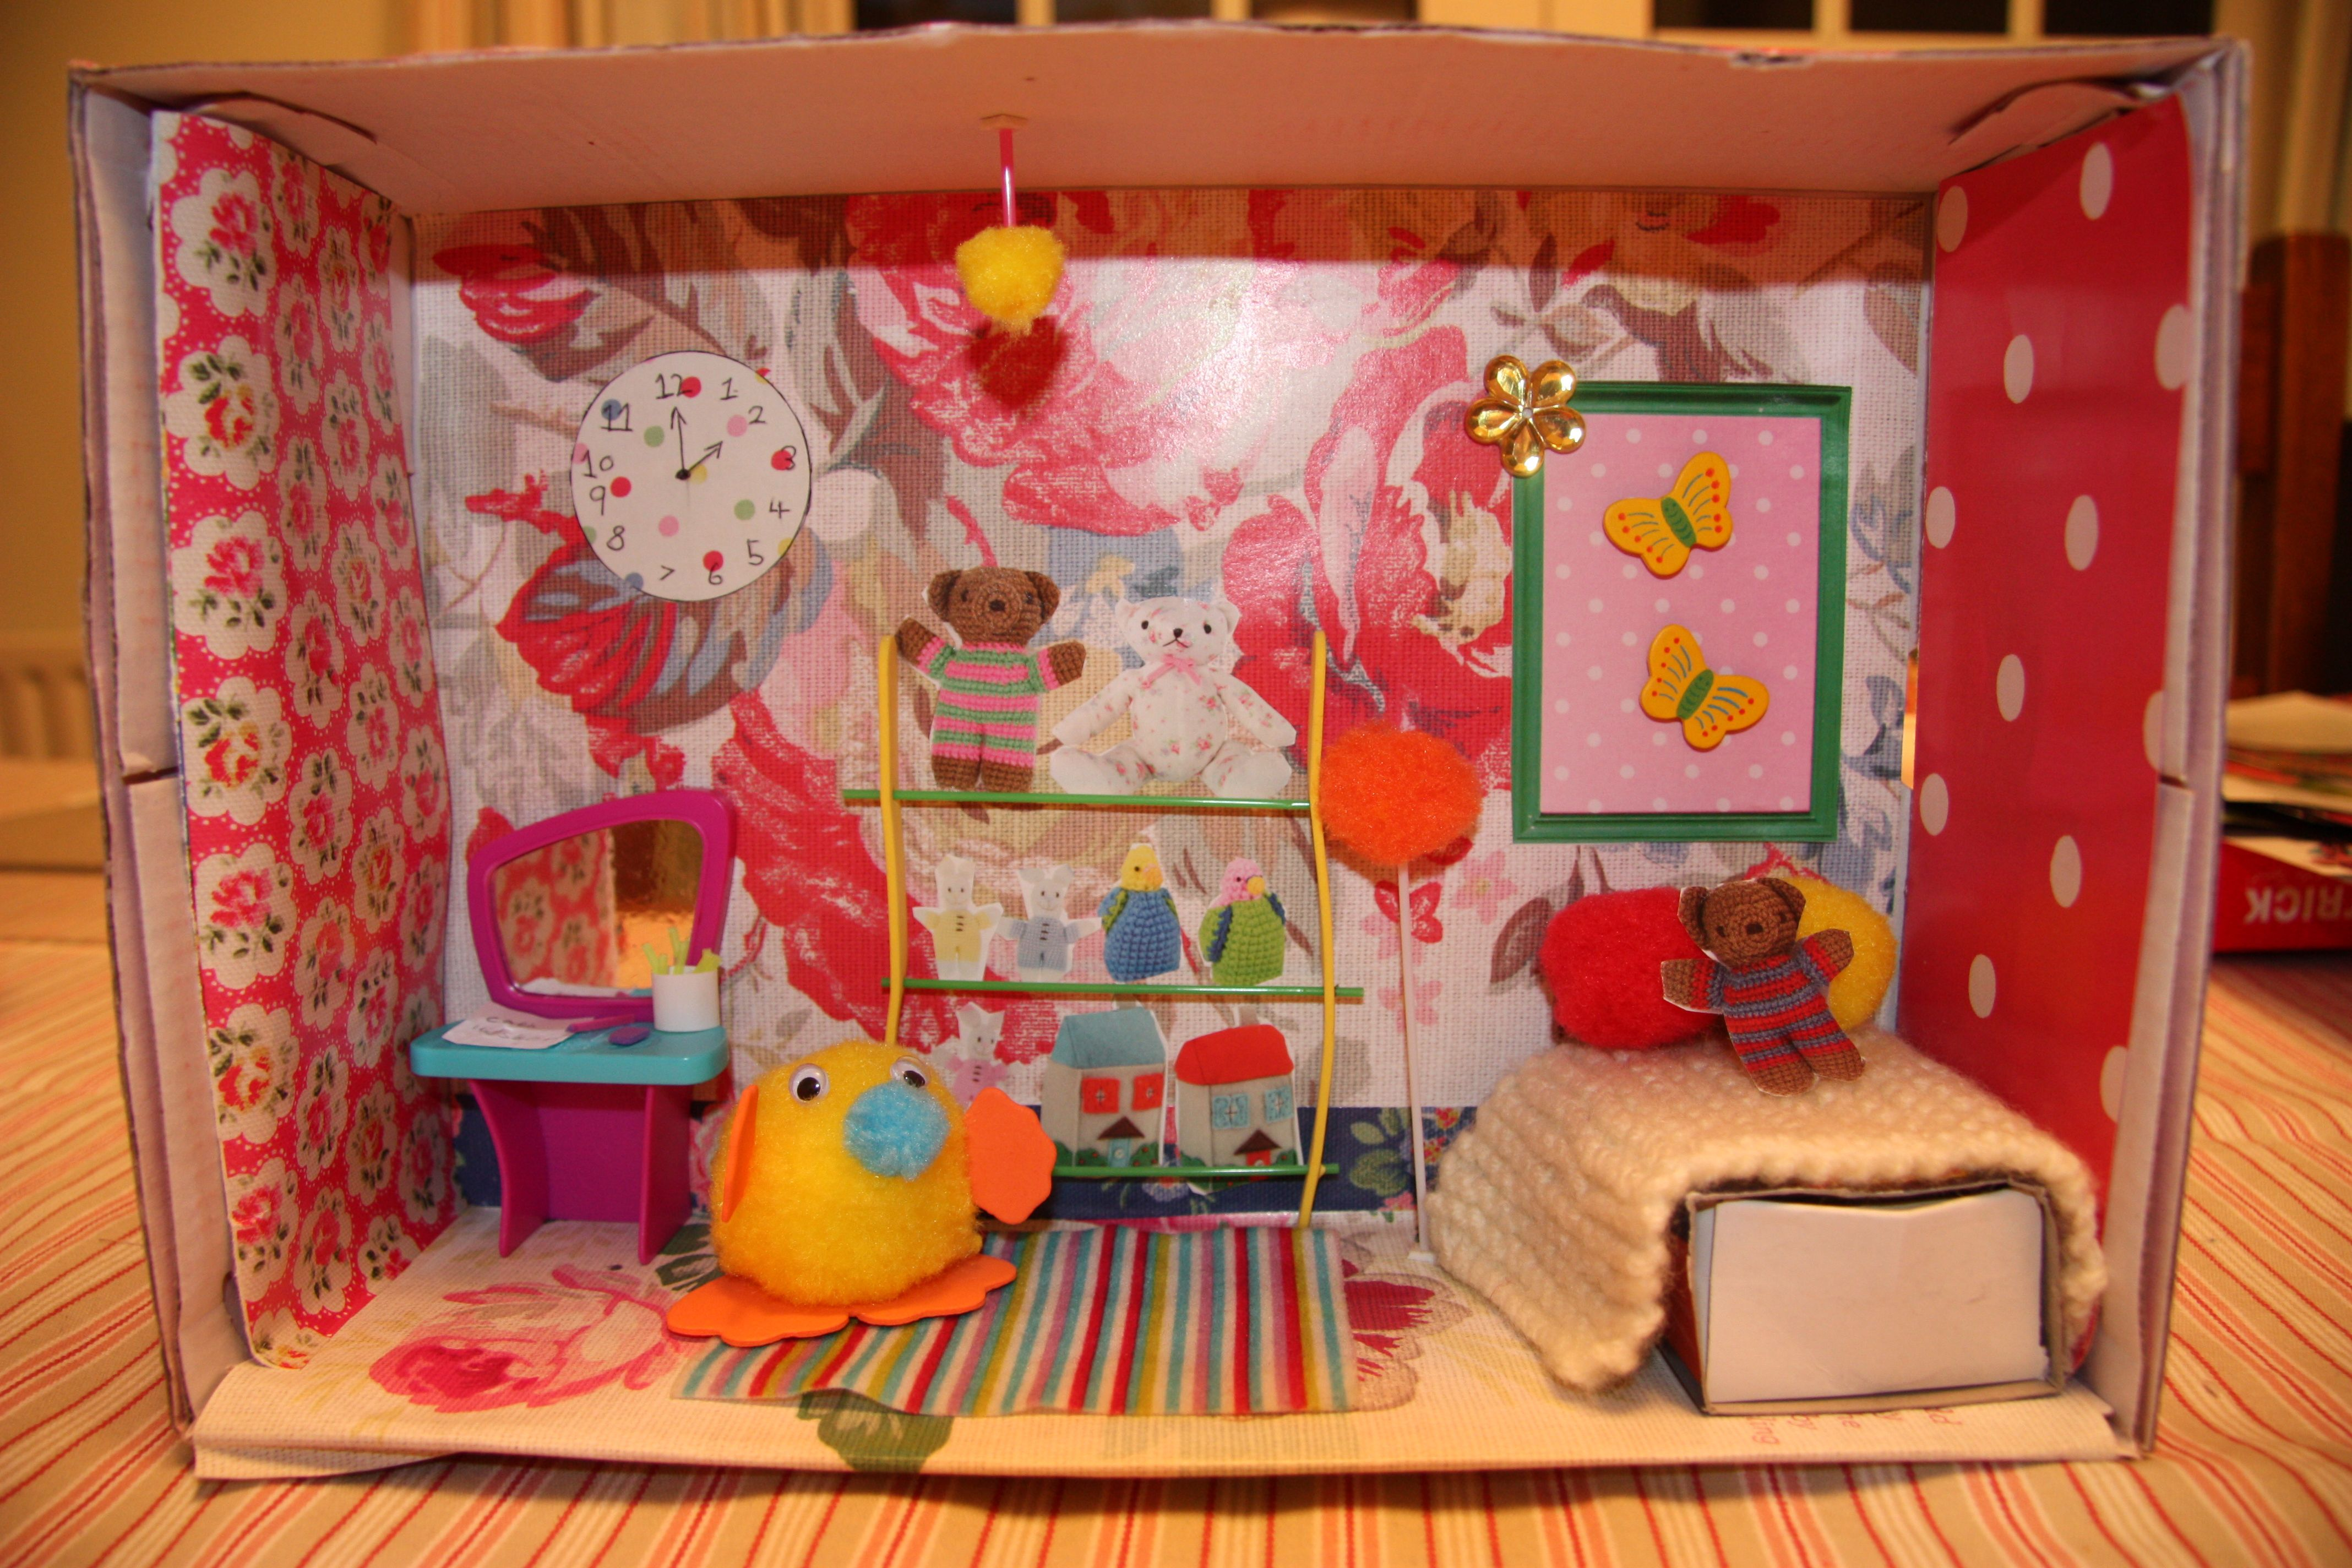 Found On Cath Kidston S Fb Page In Her Dream Room In A: Lots Of Fun With The Kids Making A Shoebox Room